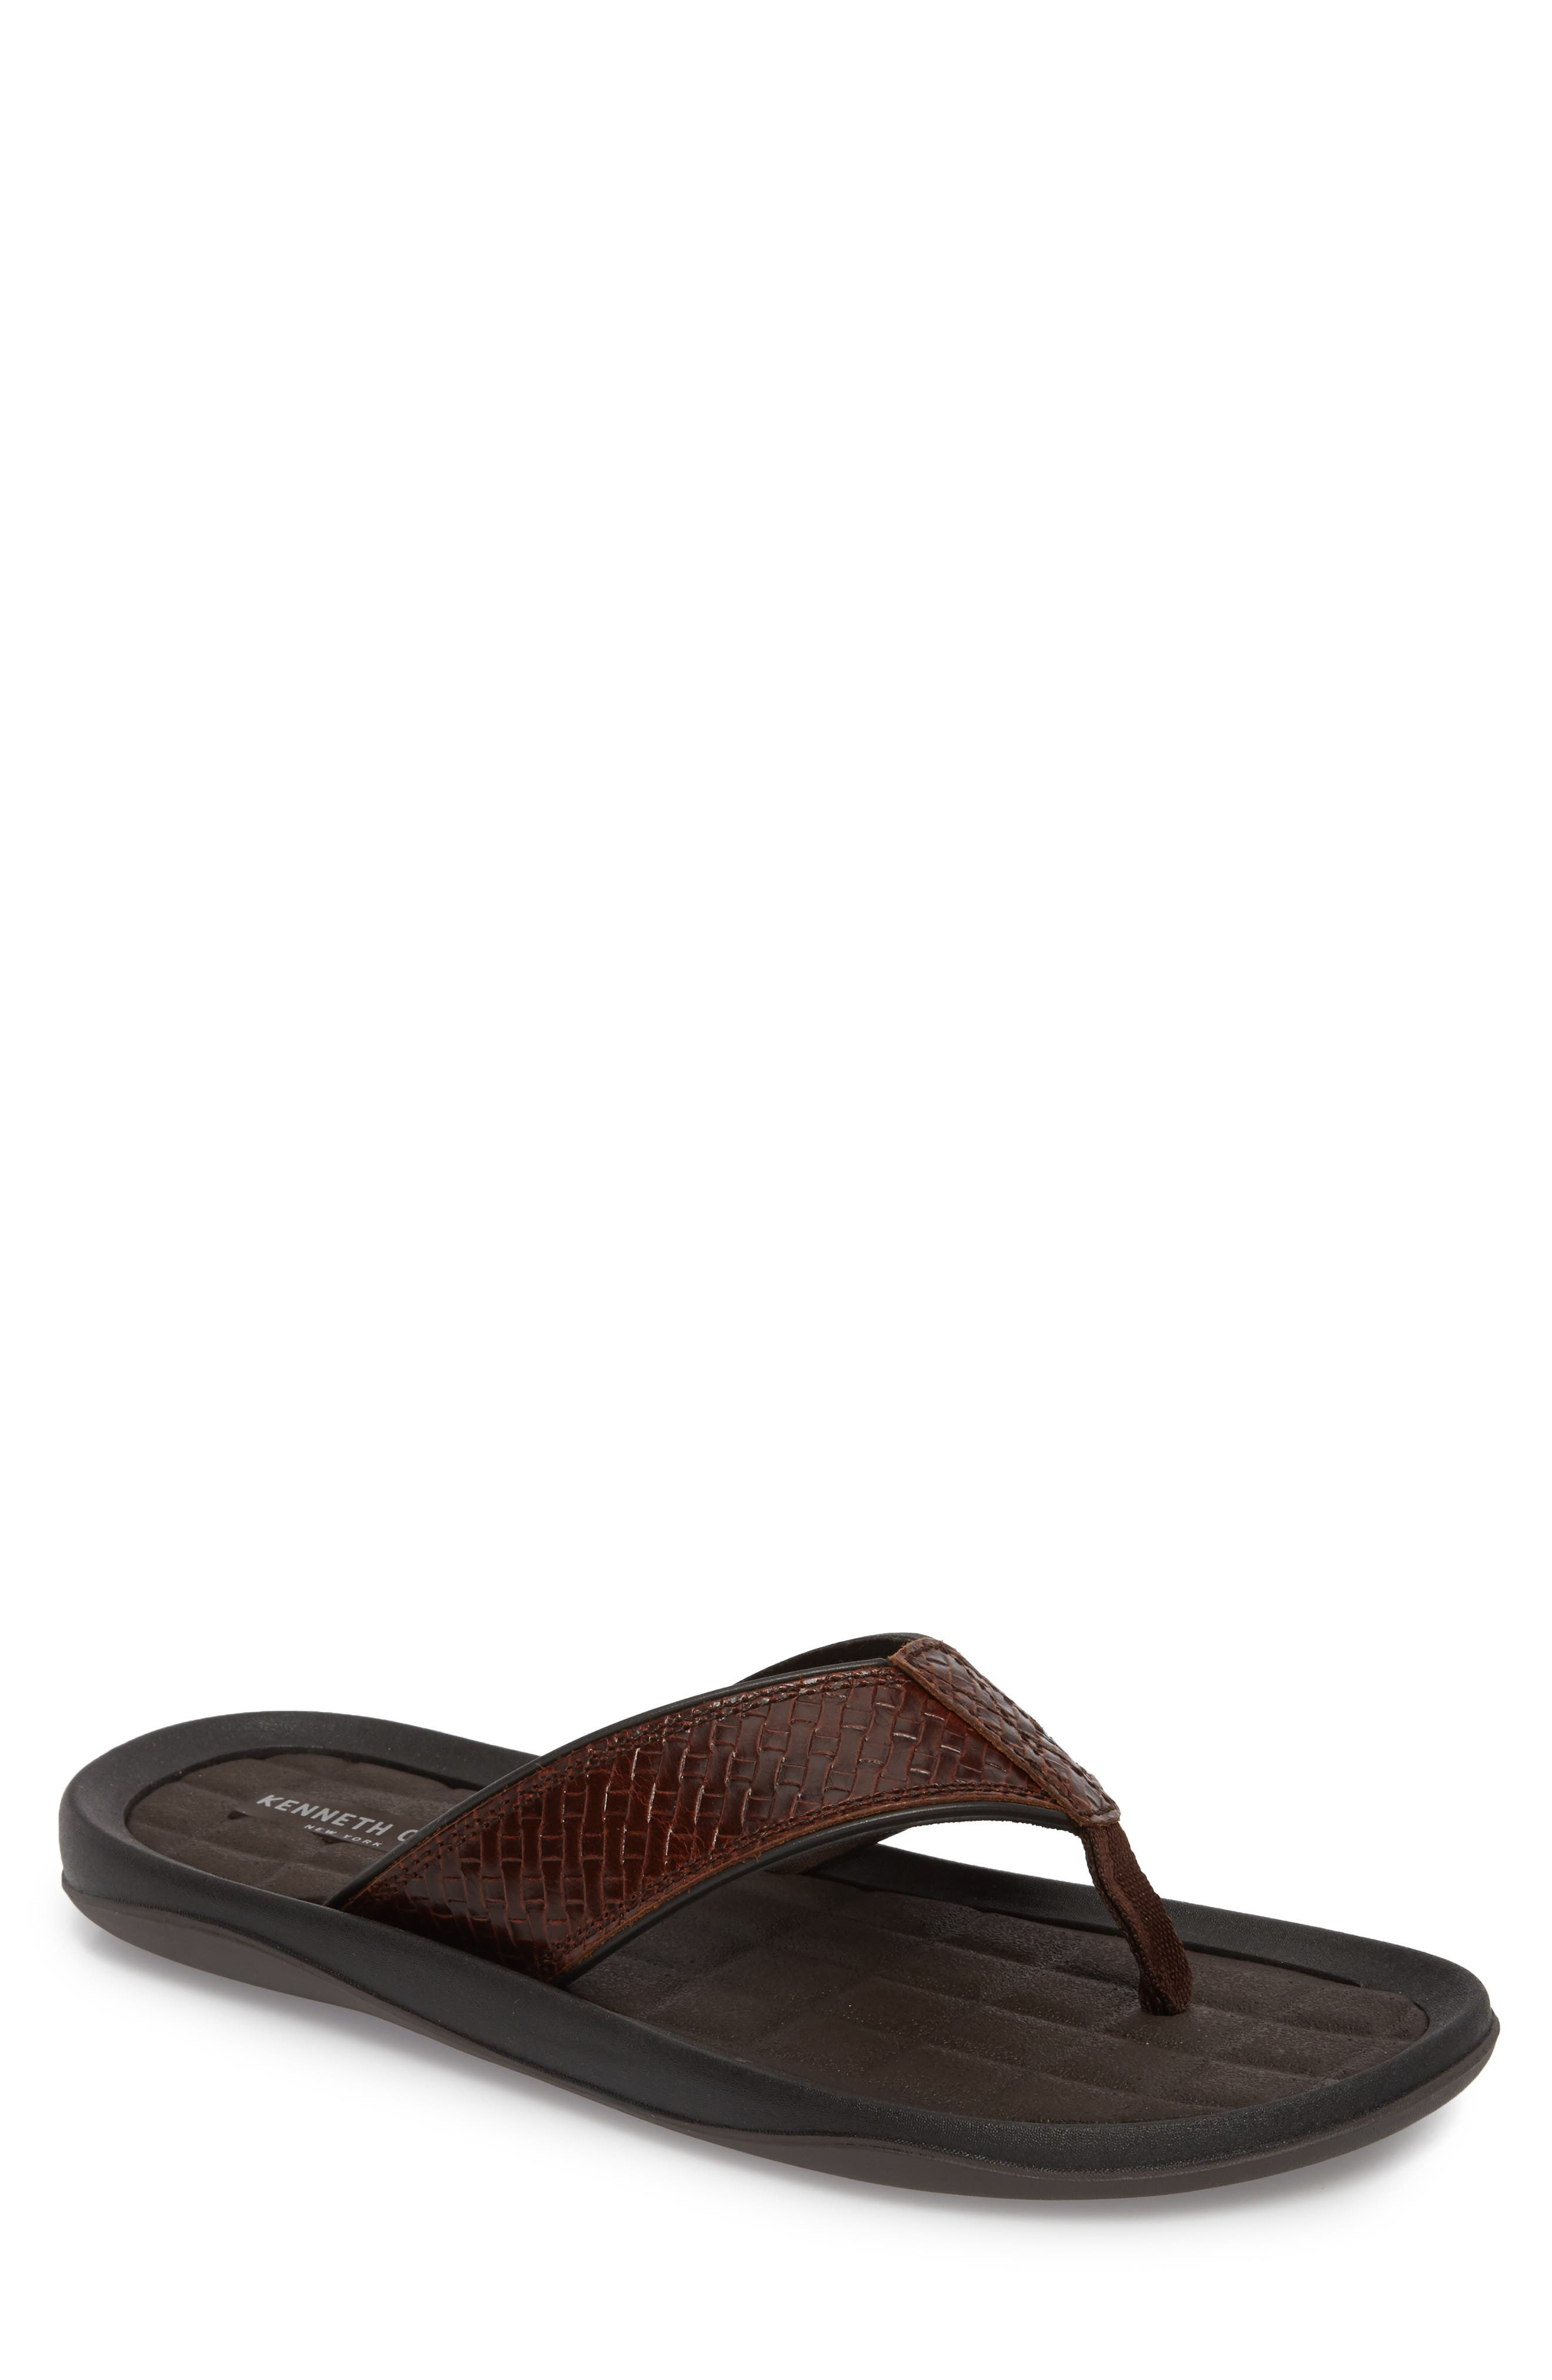 Izzo Embossed Flip Flop,                         Main,                         color, Brown Leather